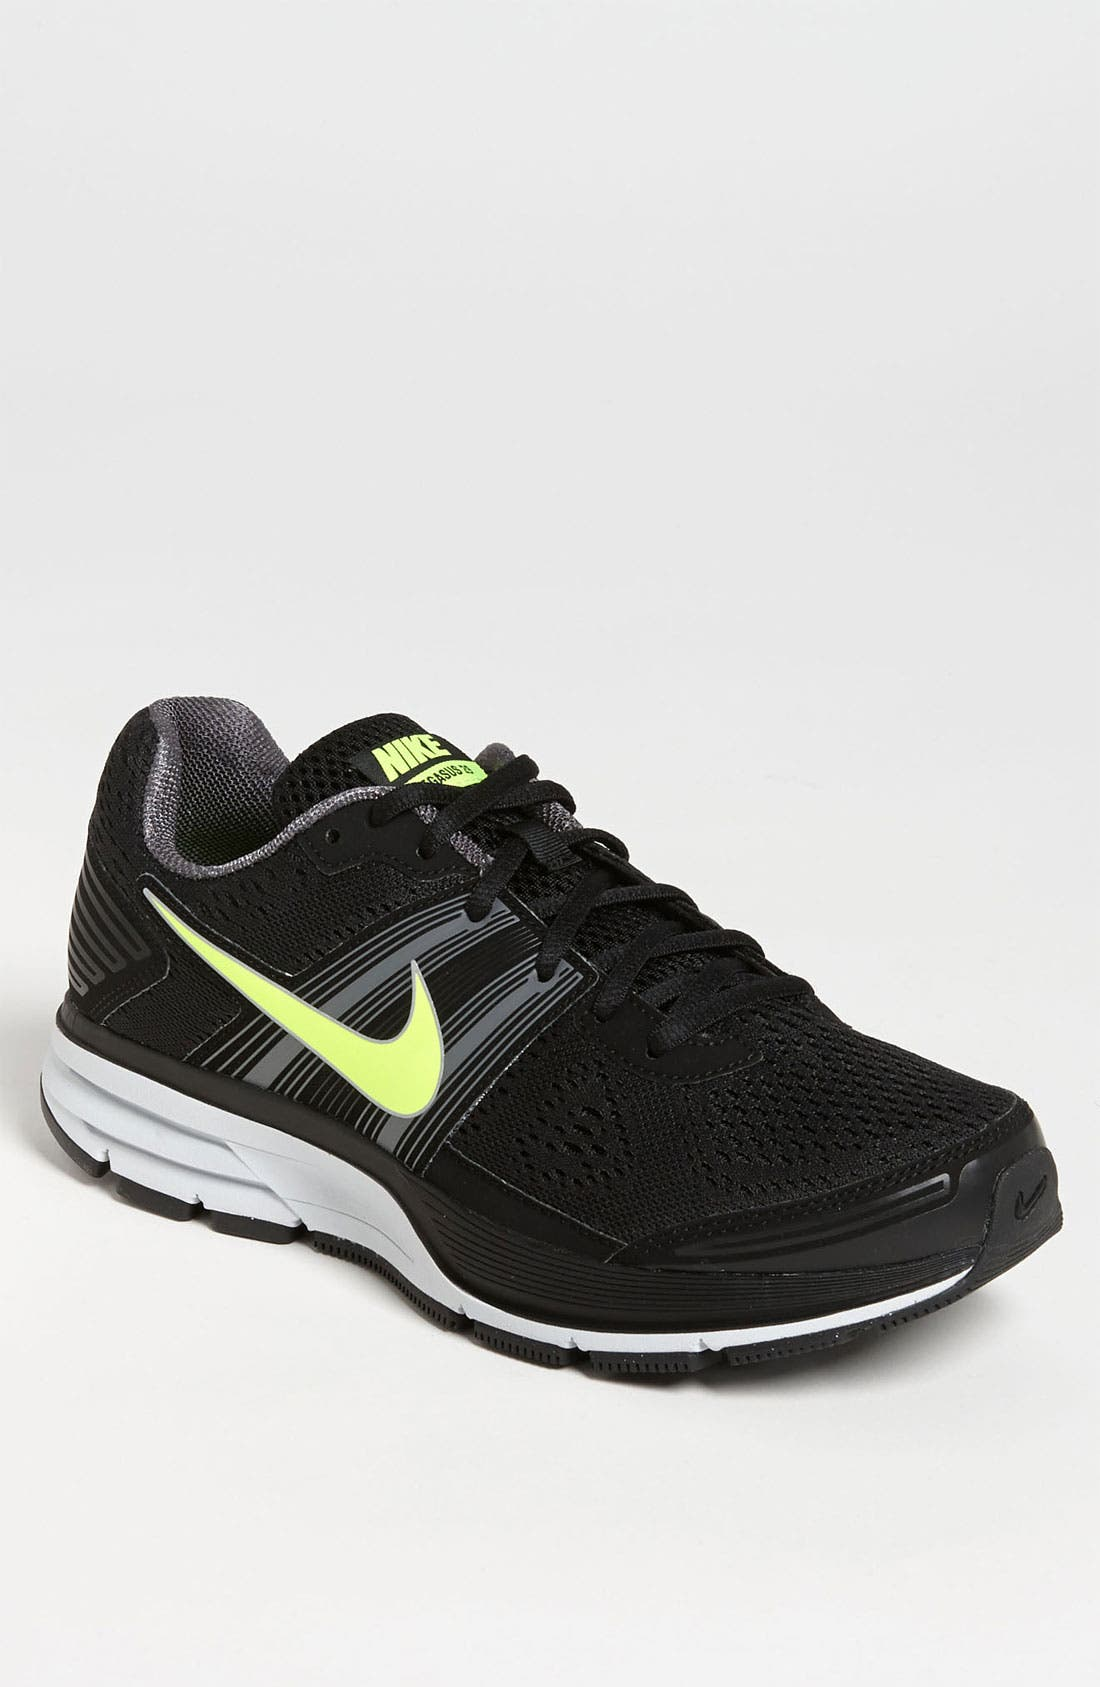 Main Image - Nike 'Air Pegasus+ 29' Running Shoe (Men)